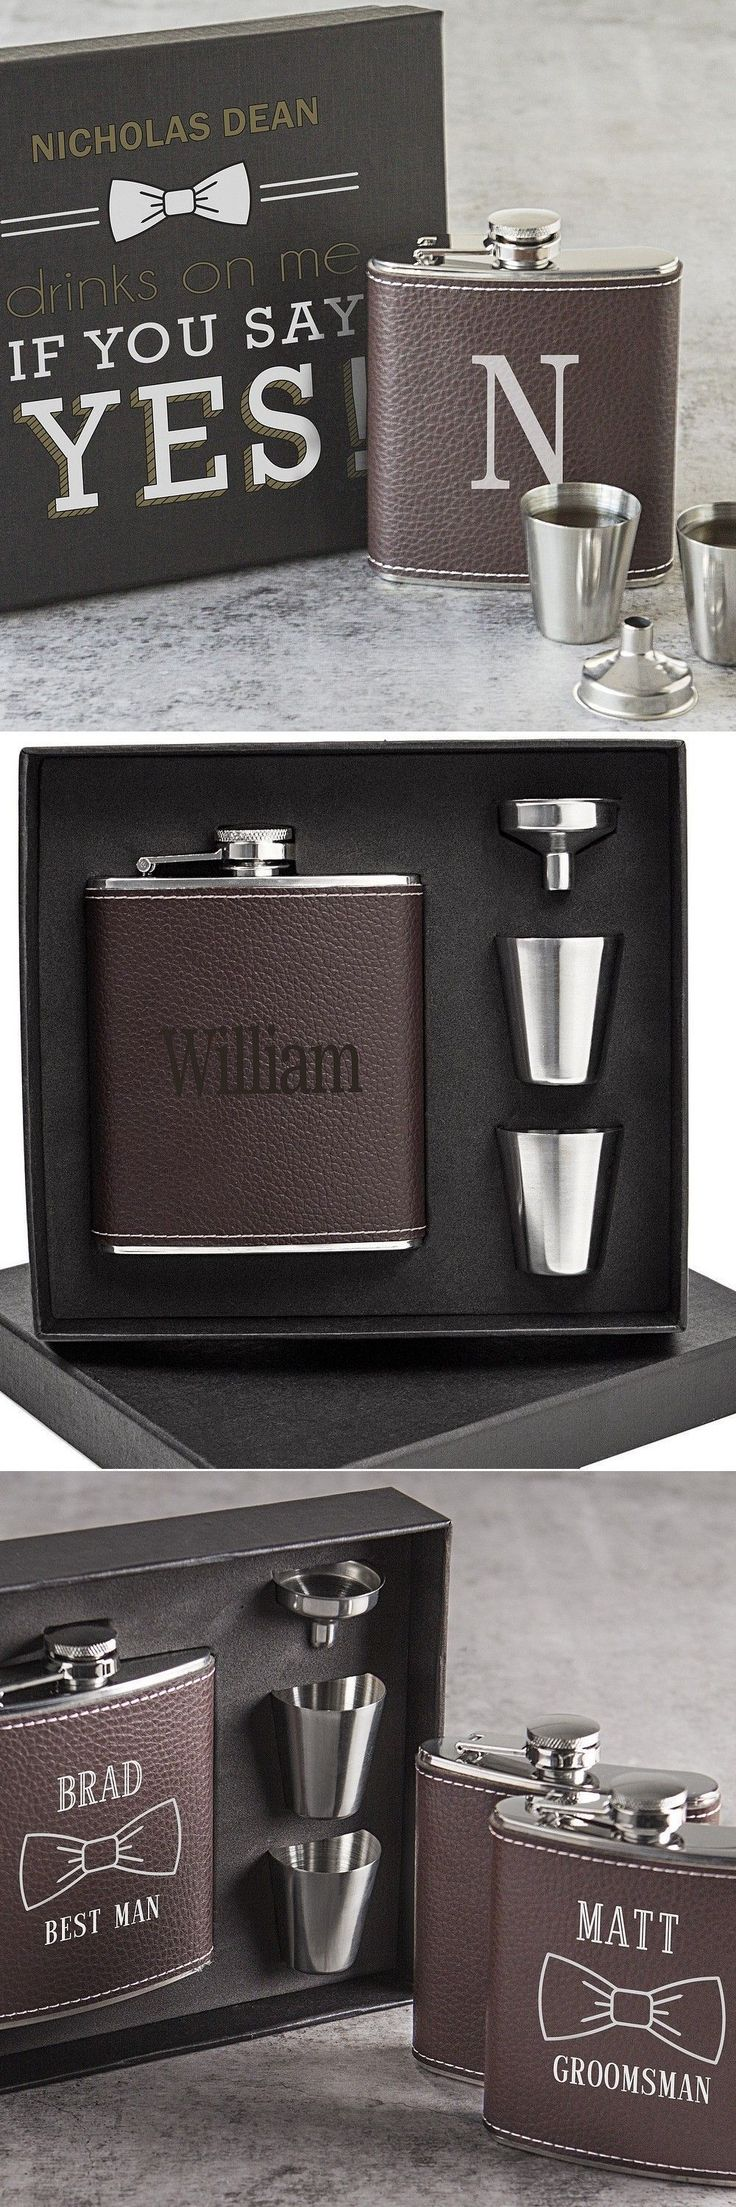 Groomsmen Gifts Idea - Hip flasks personalized with your best man and groomsmen's names or initial is a timeless functional gift they guys in your wedding party will actually use. #groomsmengifts #groomsmengiftsideas